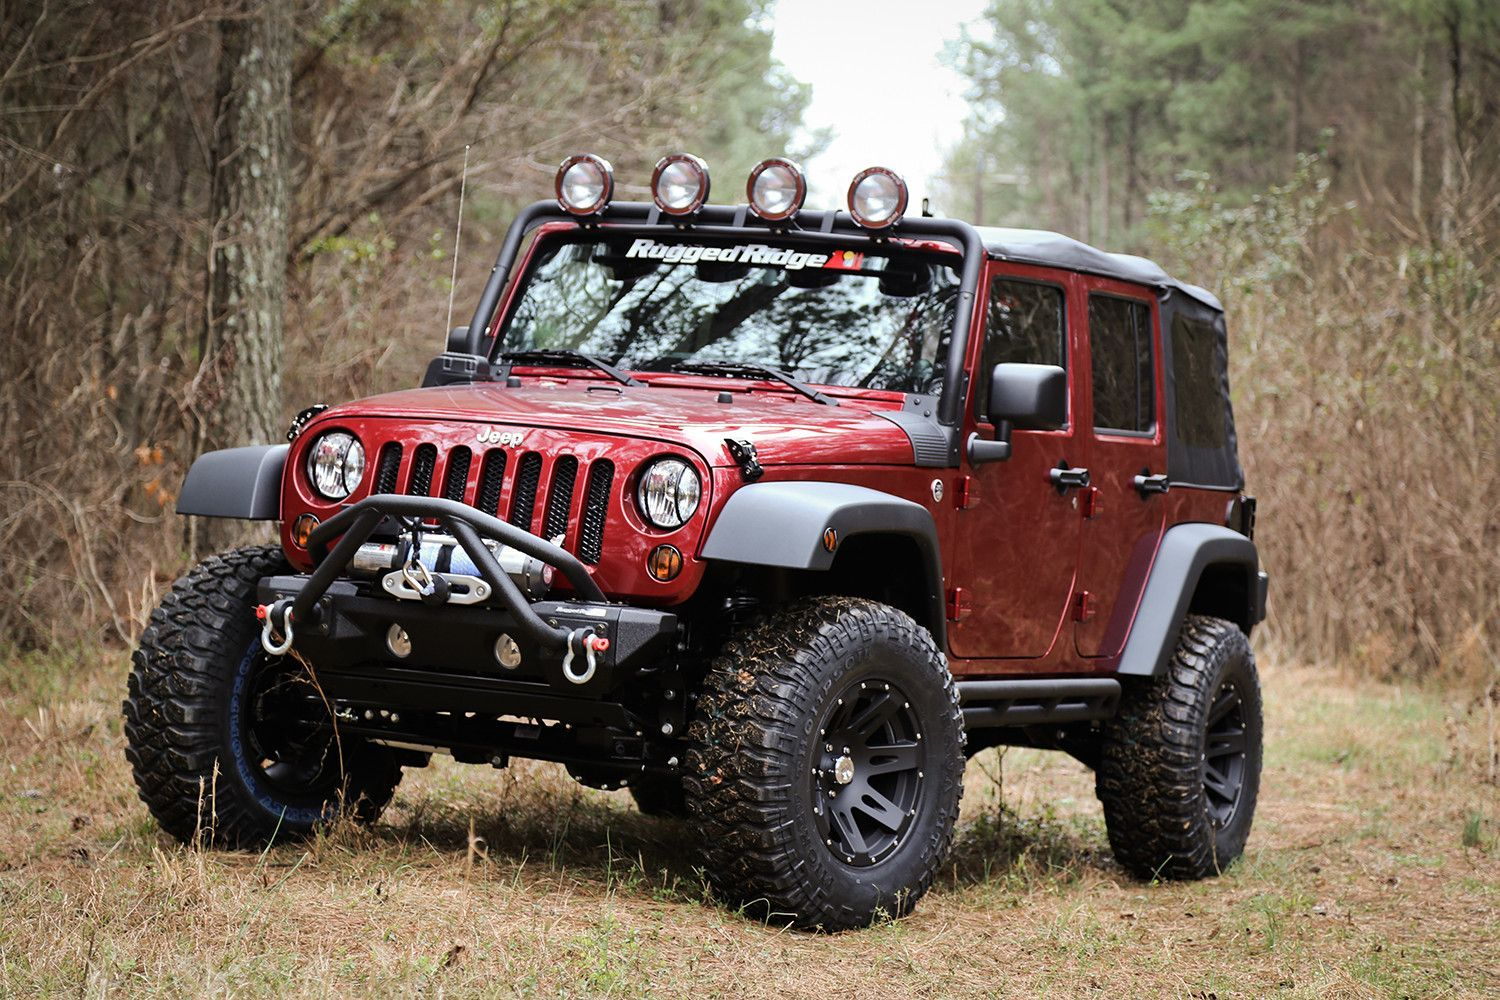 Direct Oe Replacement Jeep Parts And Accessories Built To The